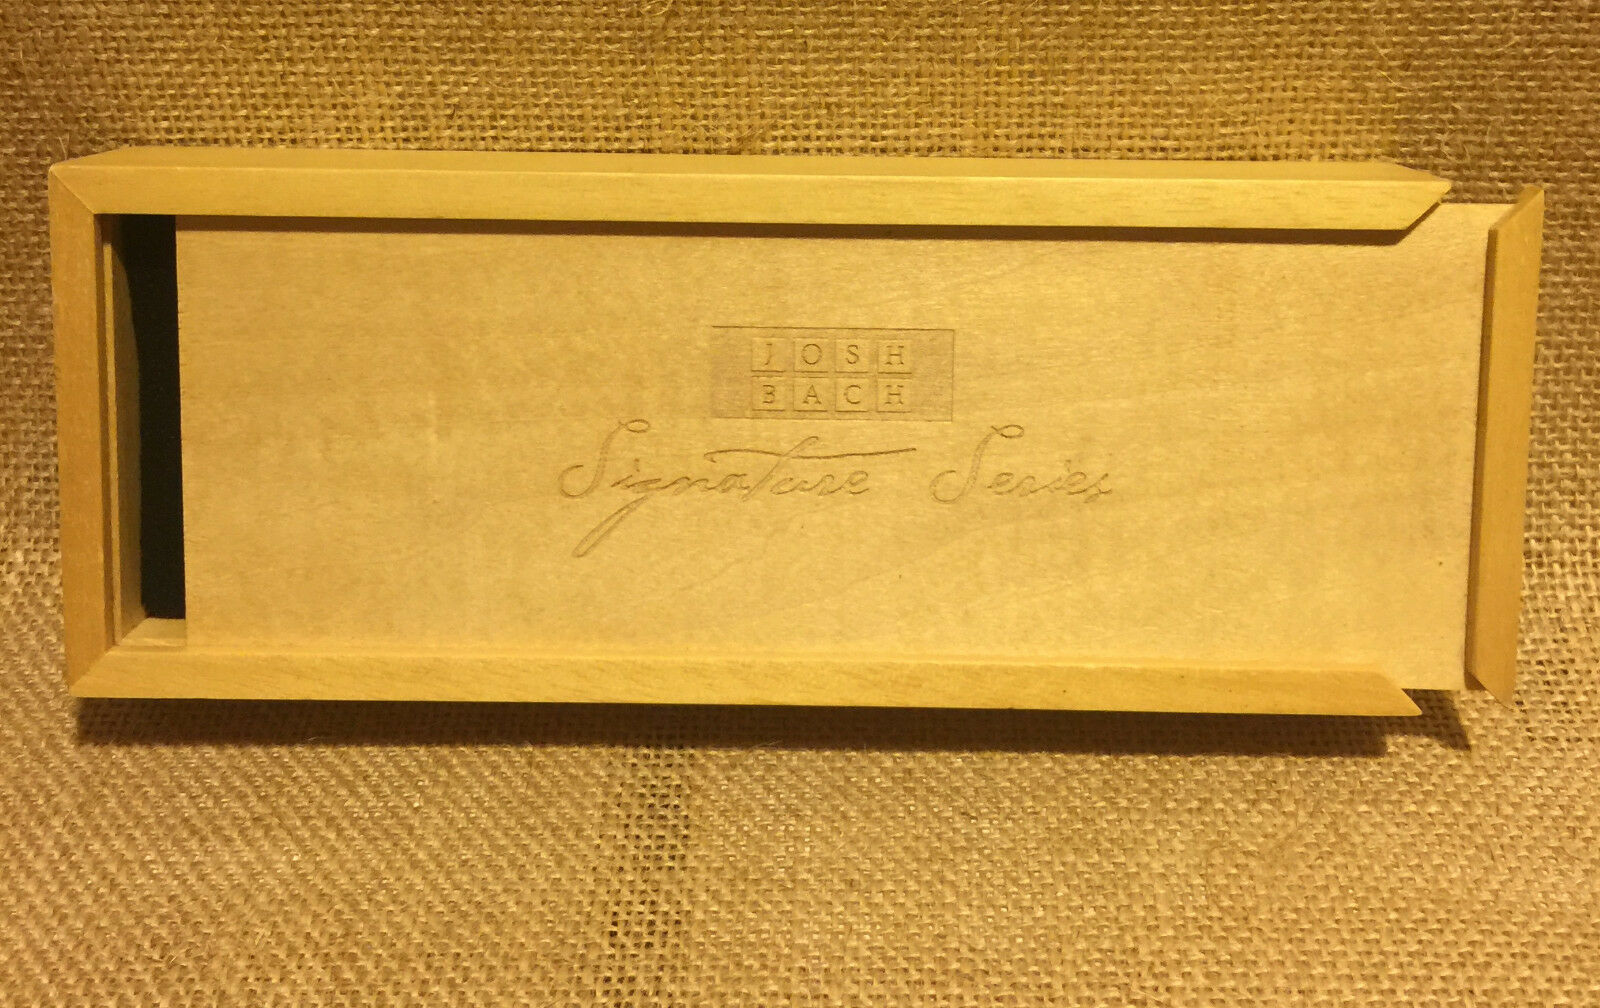 Dentist Hygienist Dental Student Gift Pen Josh Bach Signature Series Wooden Box